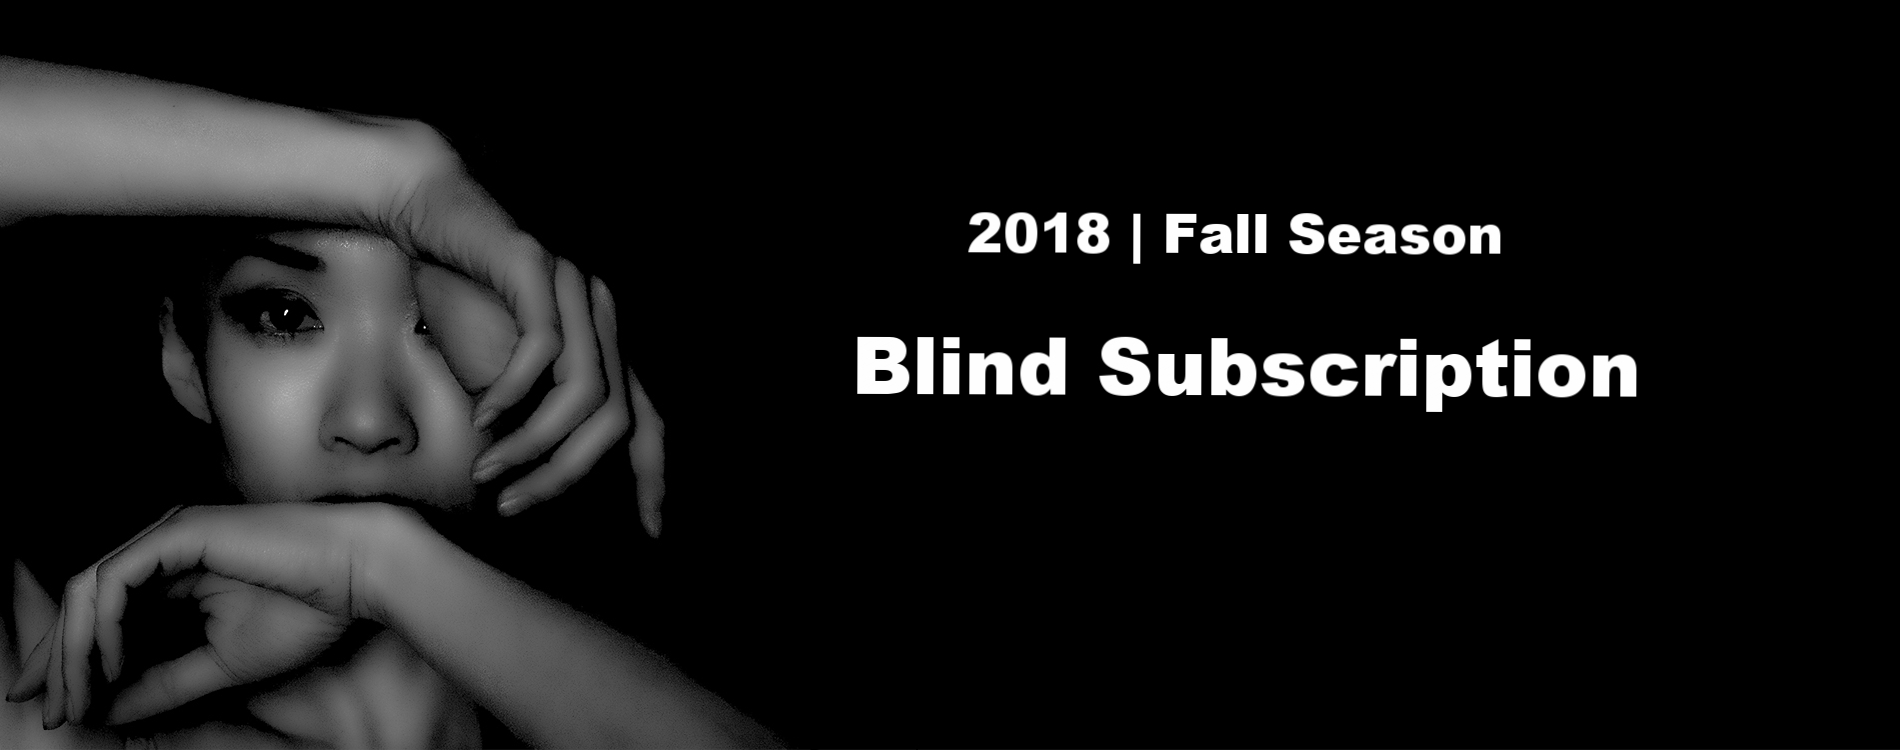 Blind Subscription.jpg